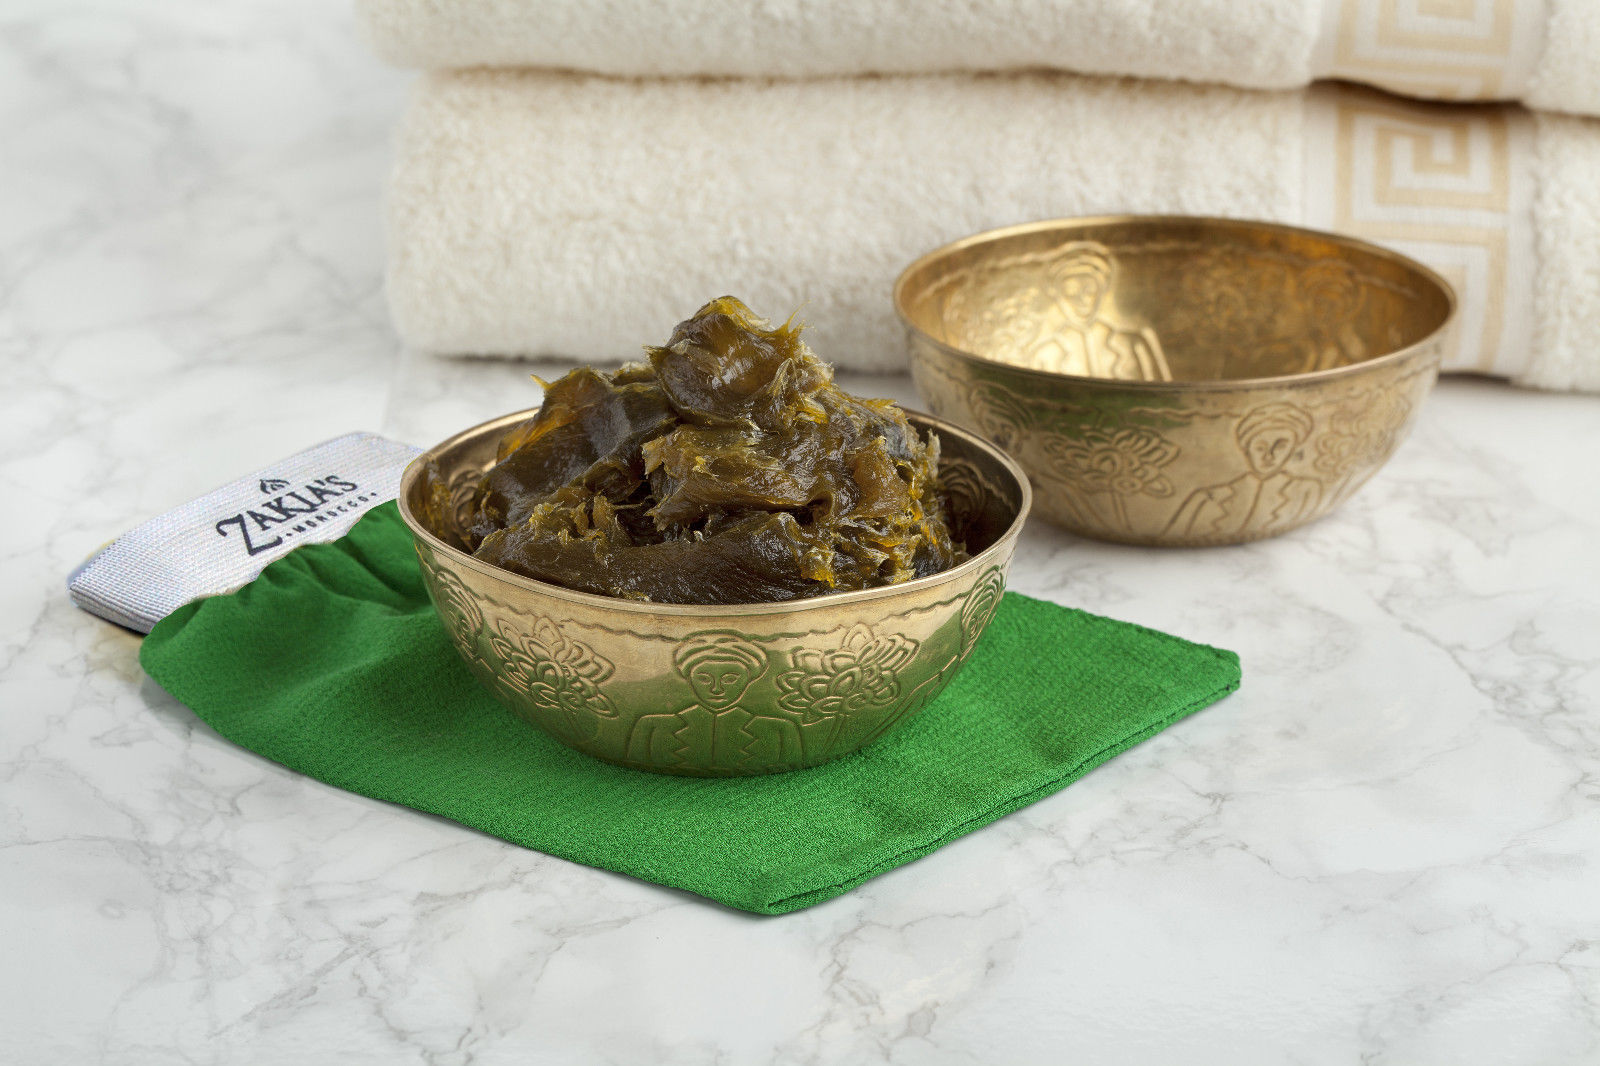 Buy 2 get 1 FREE Moroccan Black Soap - The Healing Soap 7 scents available